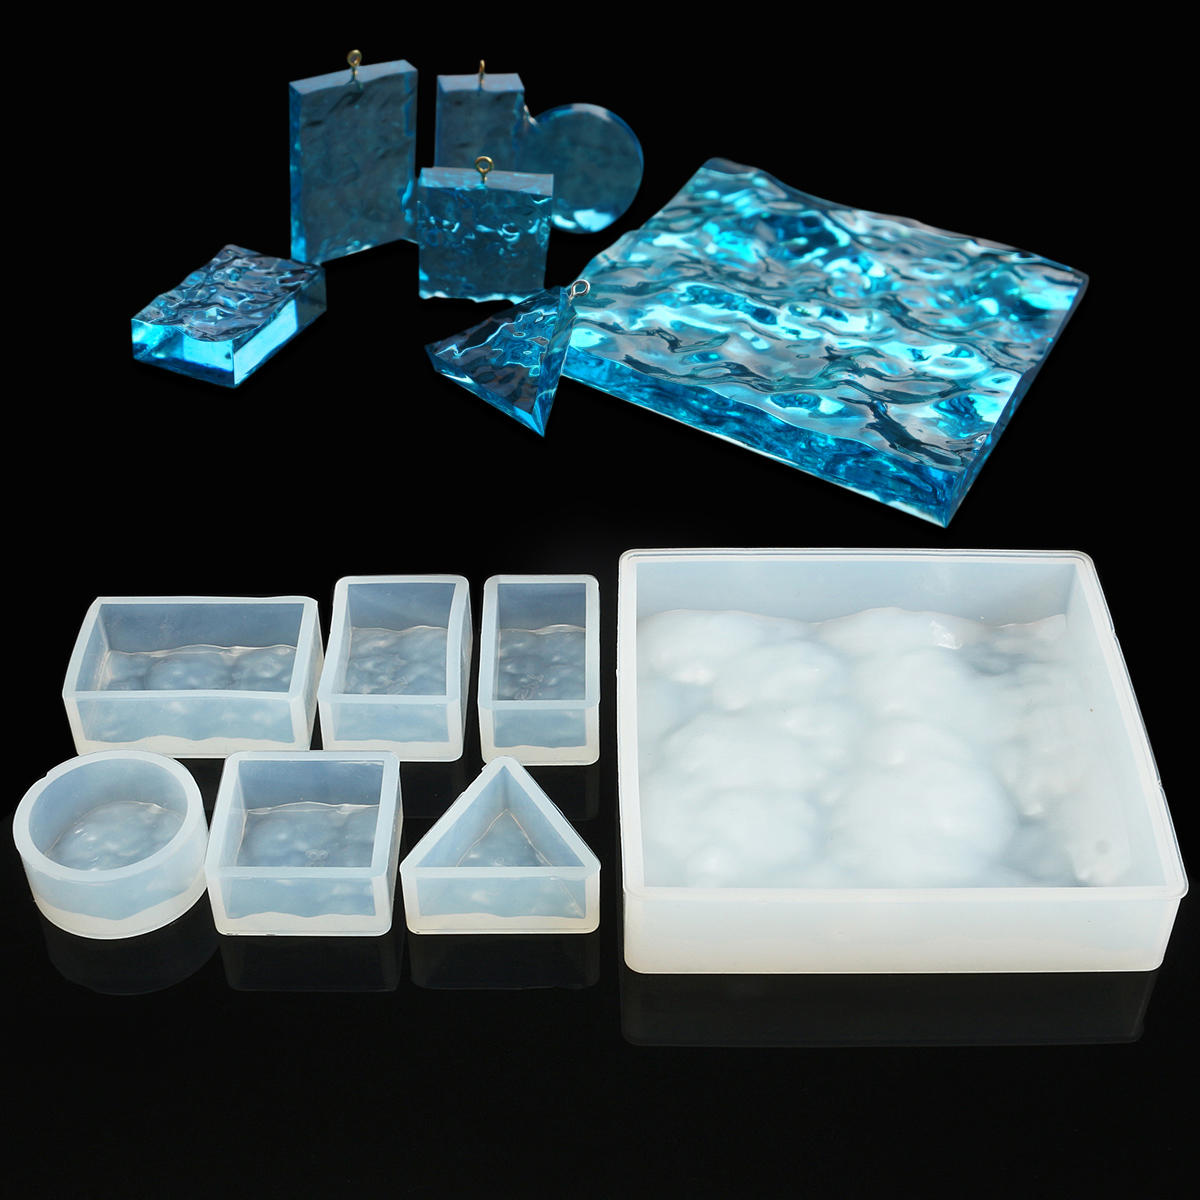 Crystal Adhesive Glue Silicone 3D Water Ripple Mold DIY Jewelry Pendant Pattern Die